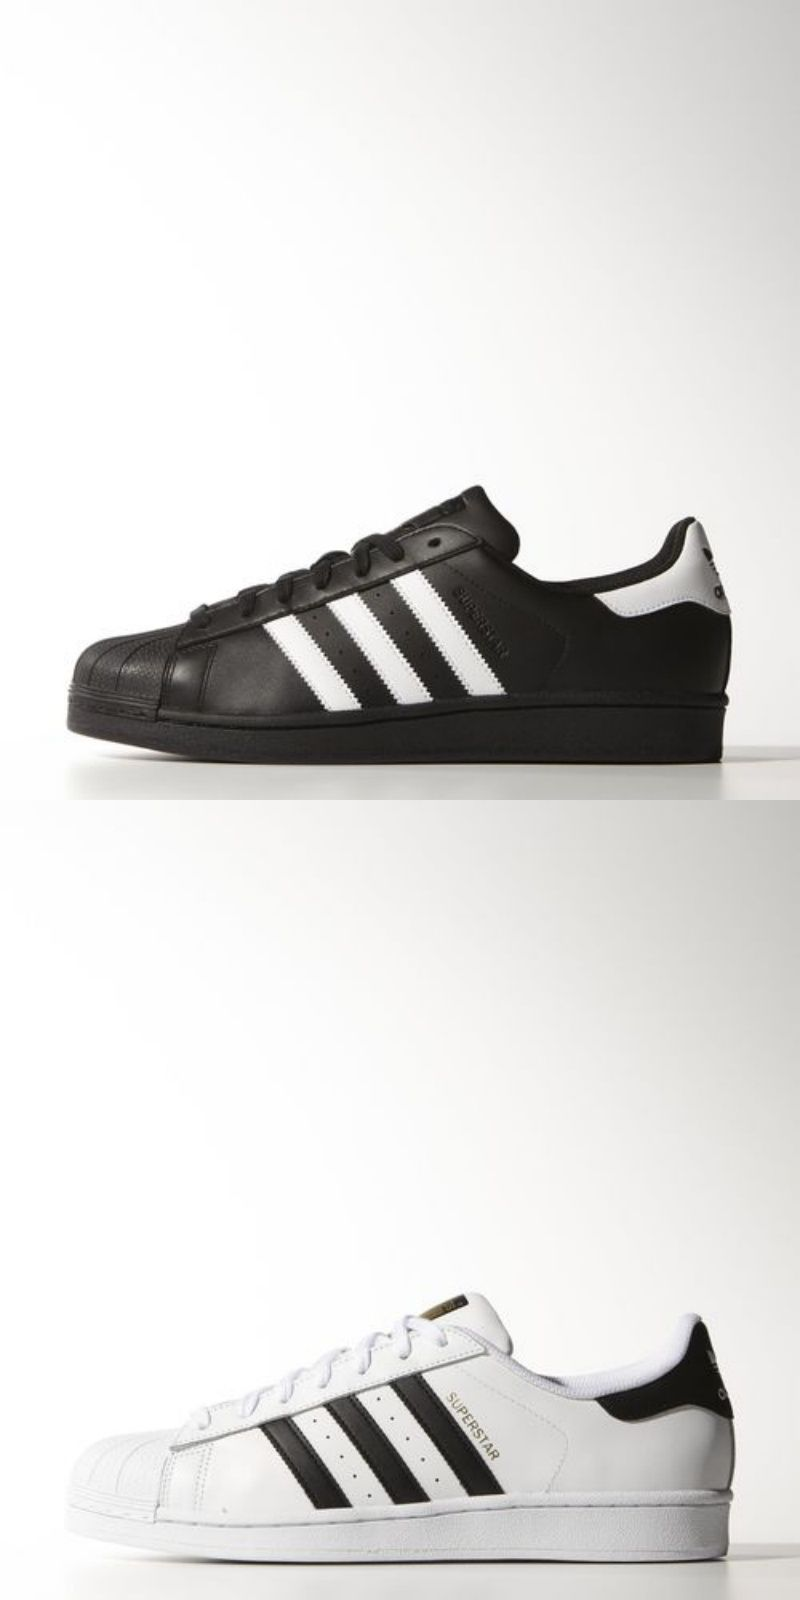 Adidas Superstar Foundation zapatos taco & Sneak Pinterest